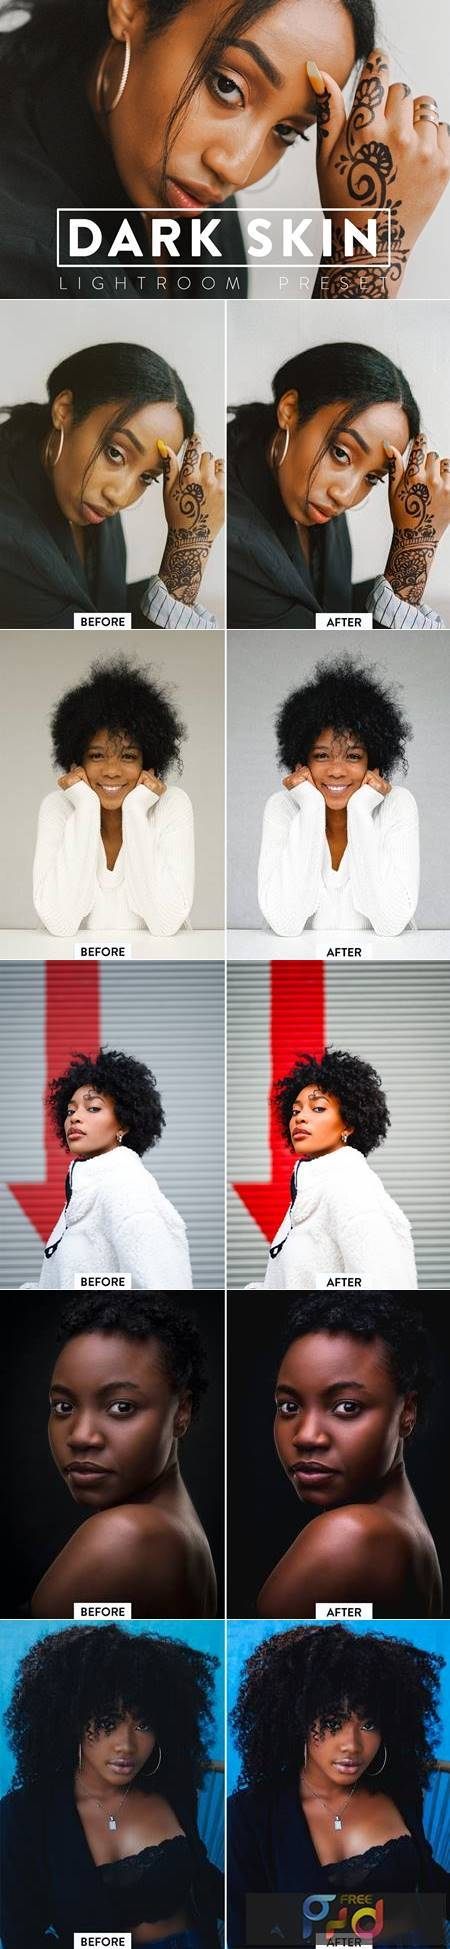 10 DARK SKIN Lightroom Preset 5468084 1